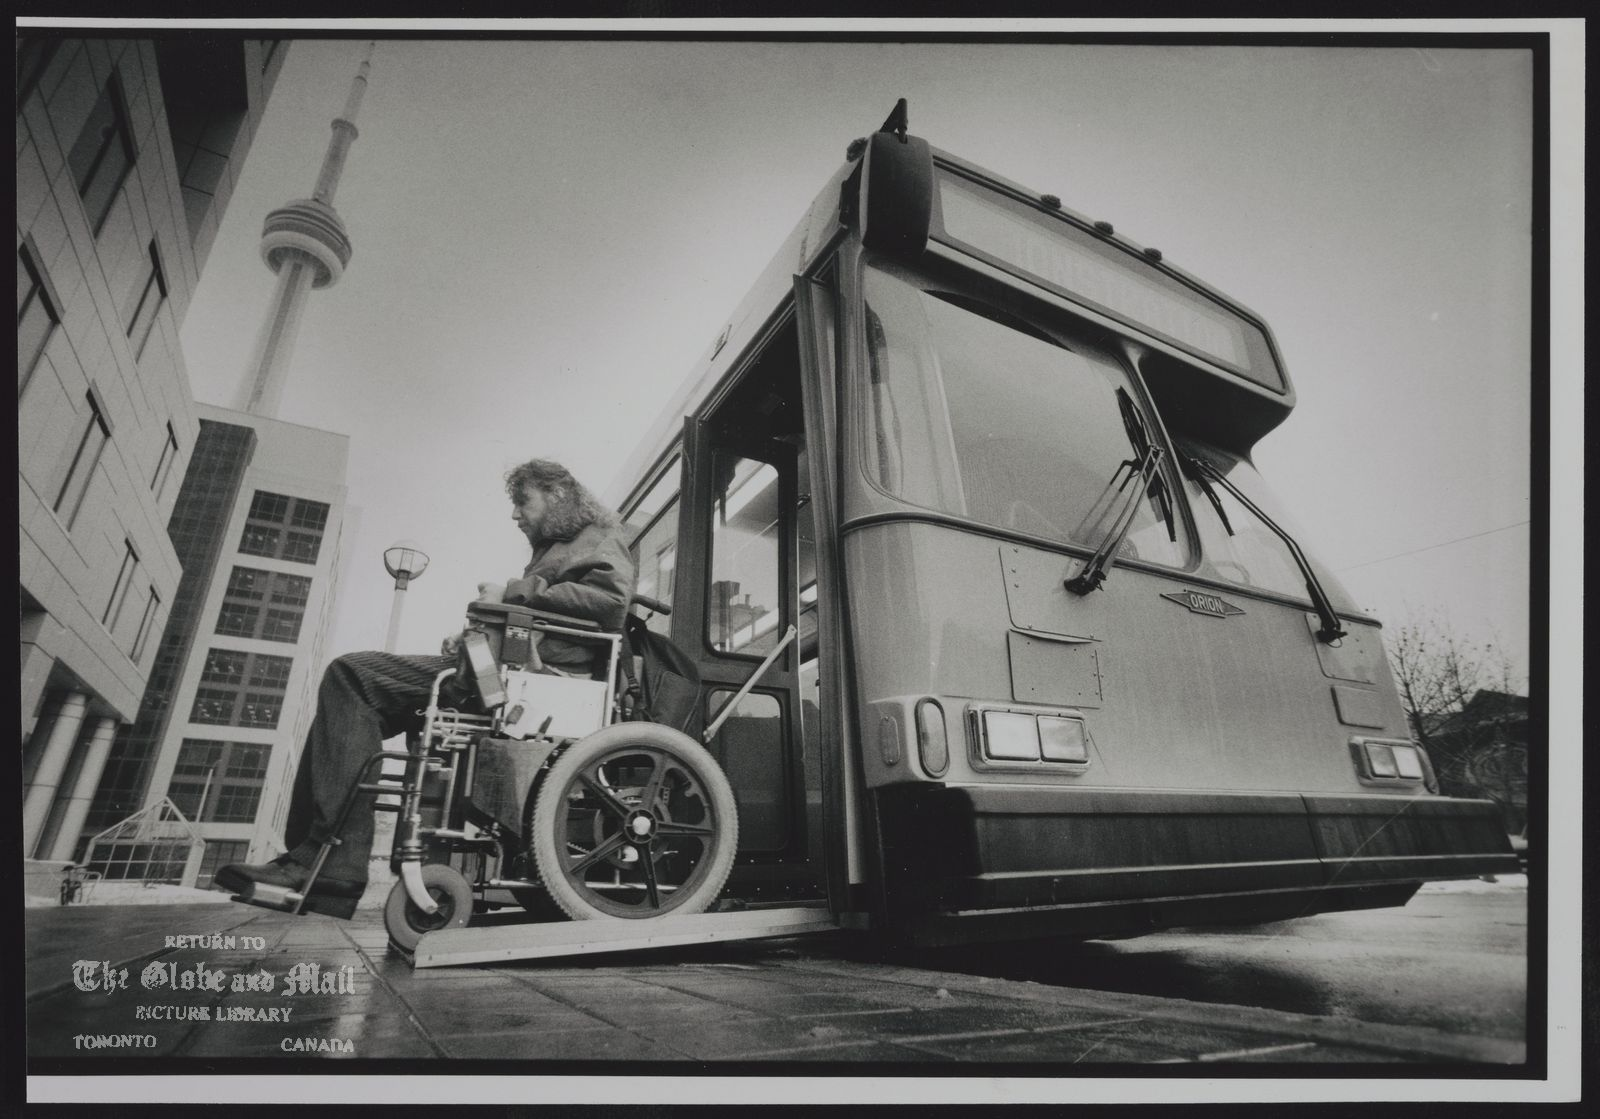 The notes transcribed from the back of this photograph are as follows: THE ENTRANCE OF NEW STEPLESS BUS BEING MANUFACTURED IN MISSISSAGUA